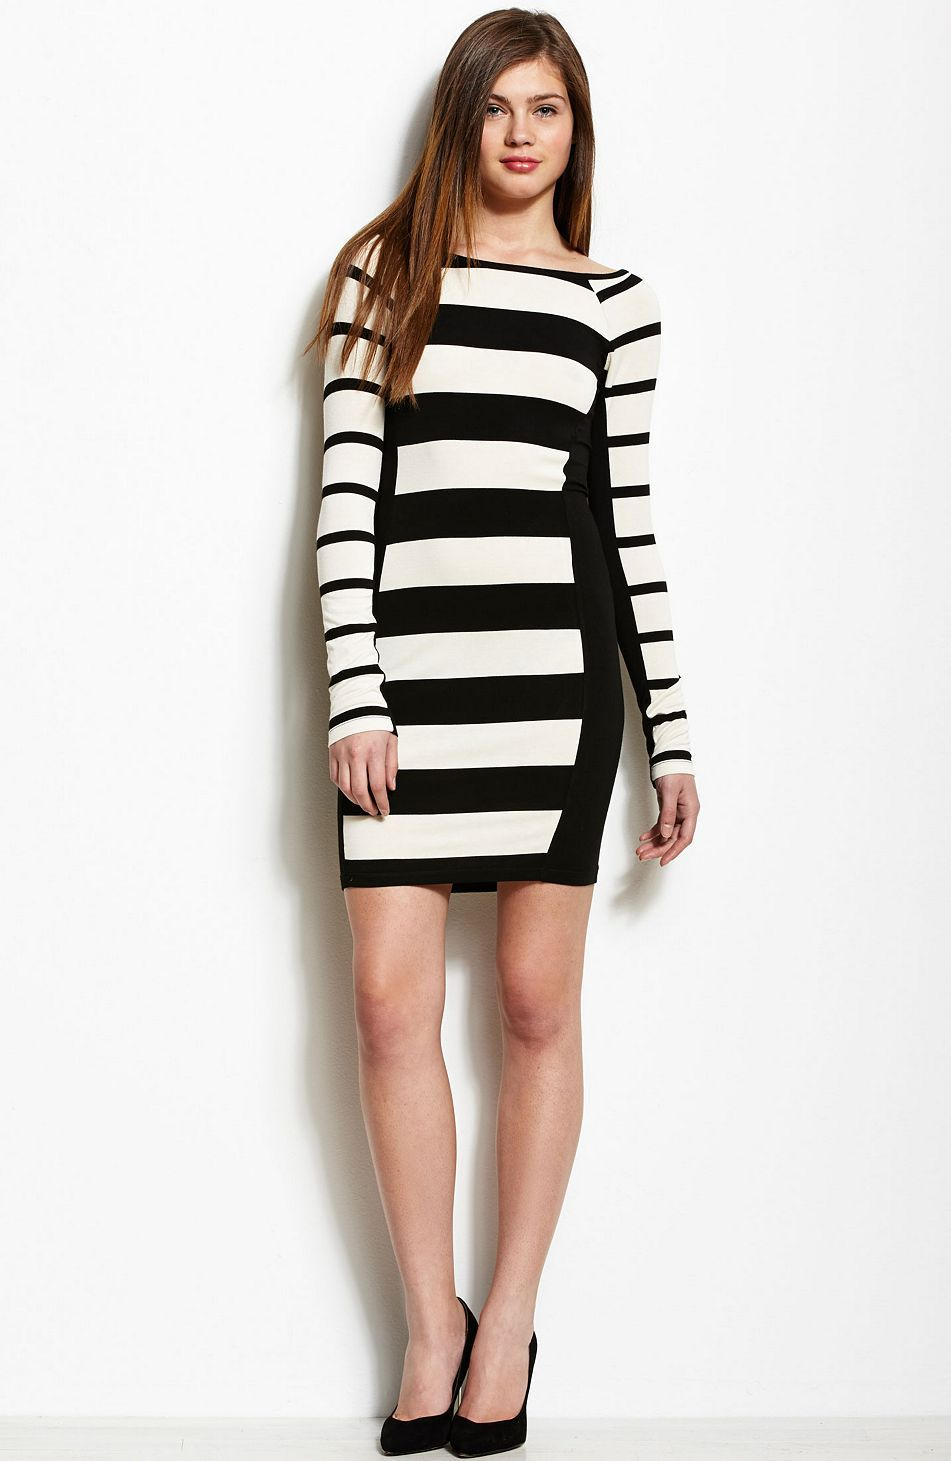 Just Ordered This Awesome Dress Striped Knit Dress Dresses Womens Armani Exchange Mini Dress Striped Knit Dress Clothes Design [ 1461 x 951 Pixel ]